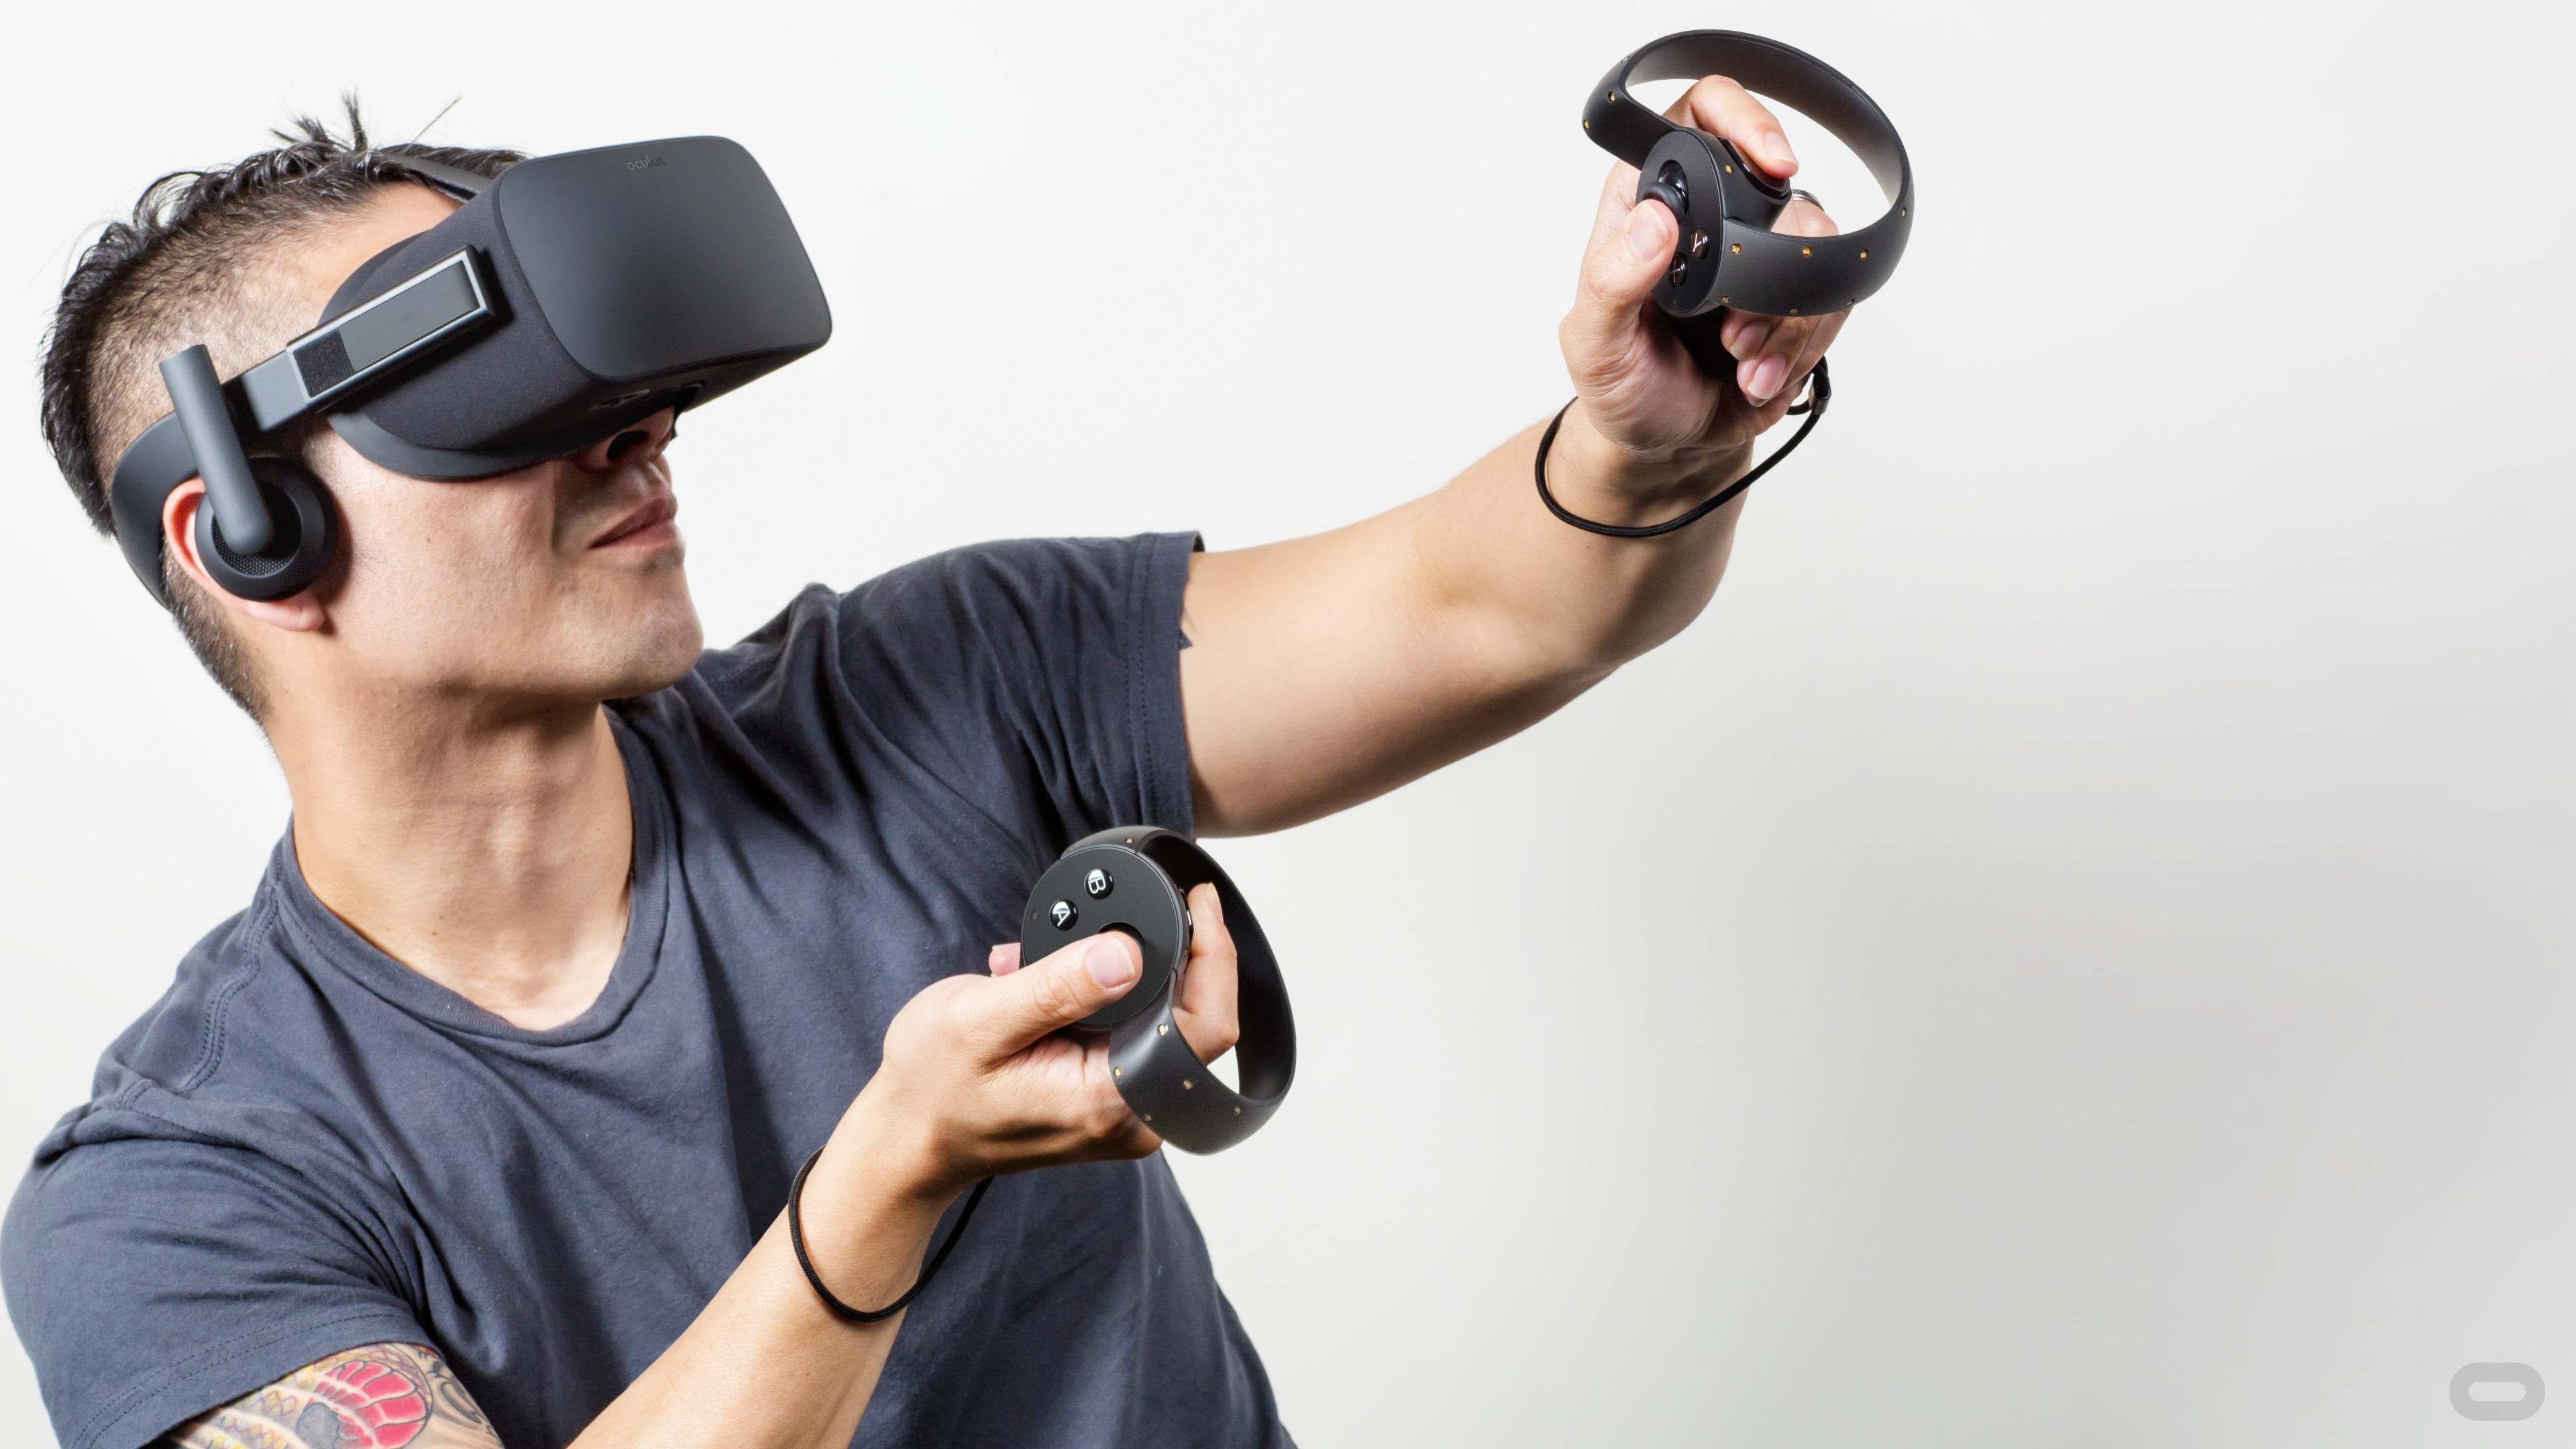 Oculus Rift Update Backfires, Makes Device Pirate Friendly ldga1yqllruow6blhknb